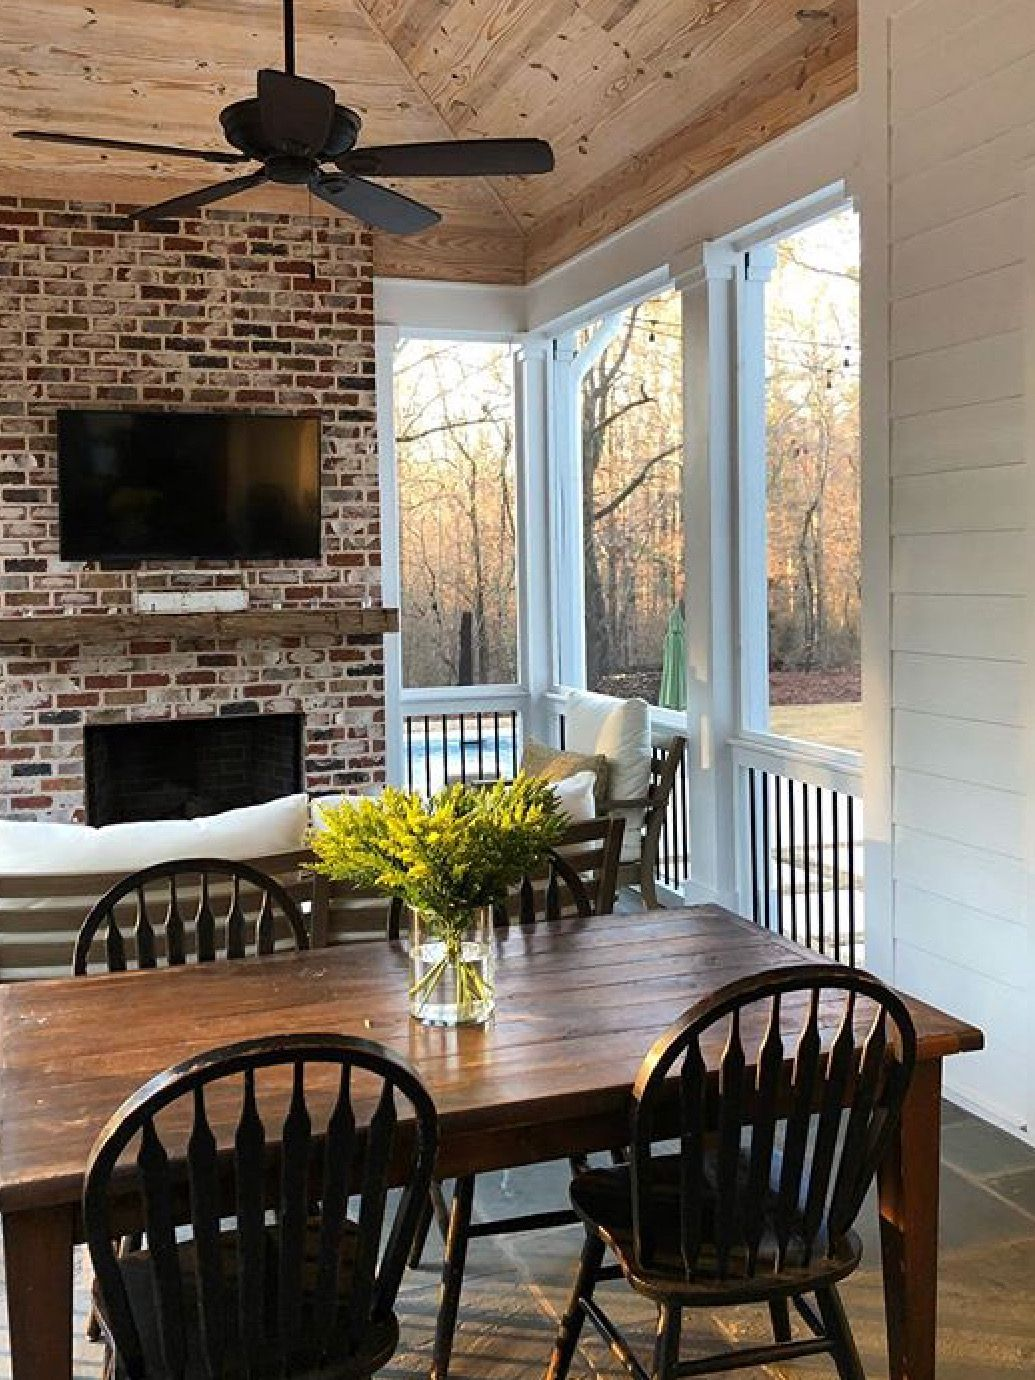 Back Porch Additions Best Ideas About Room Additions On House Additions Interior Designs: Home, Sweet Home, House Styles